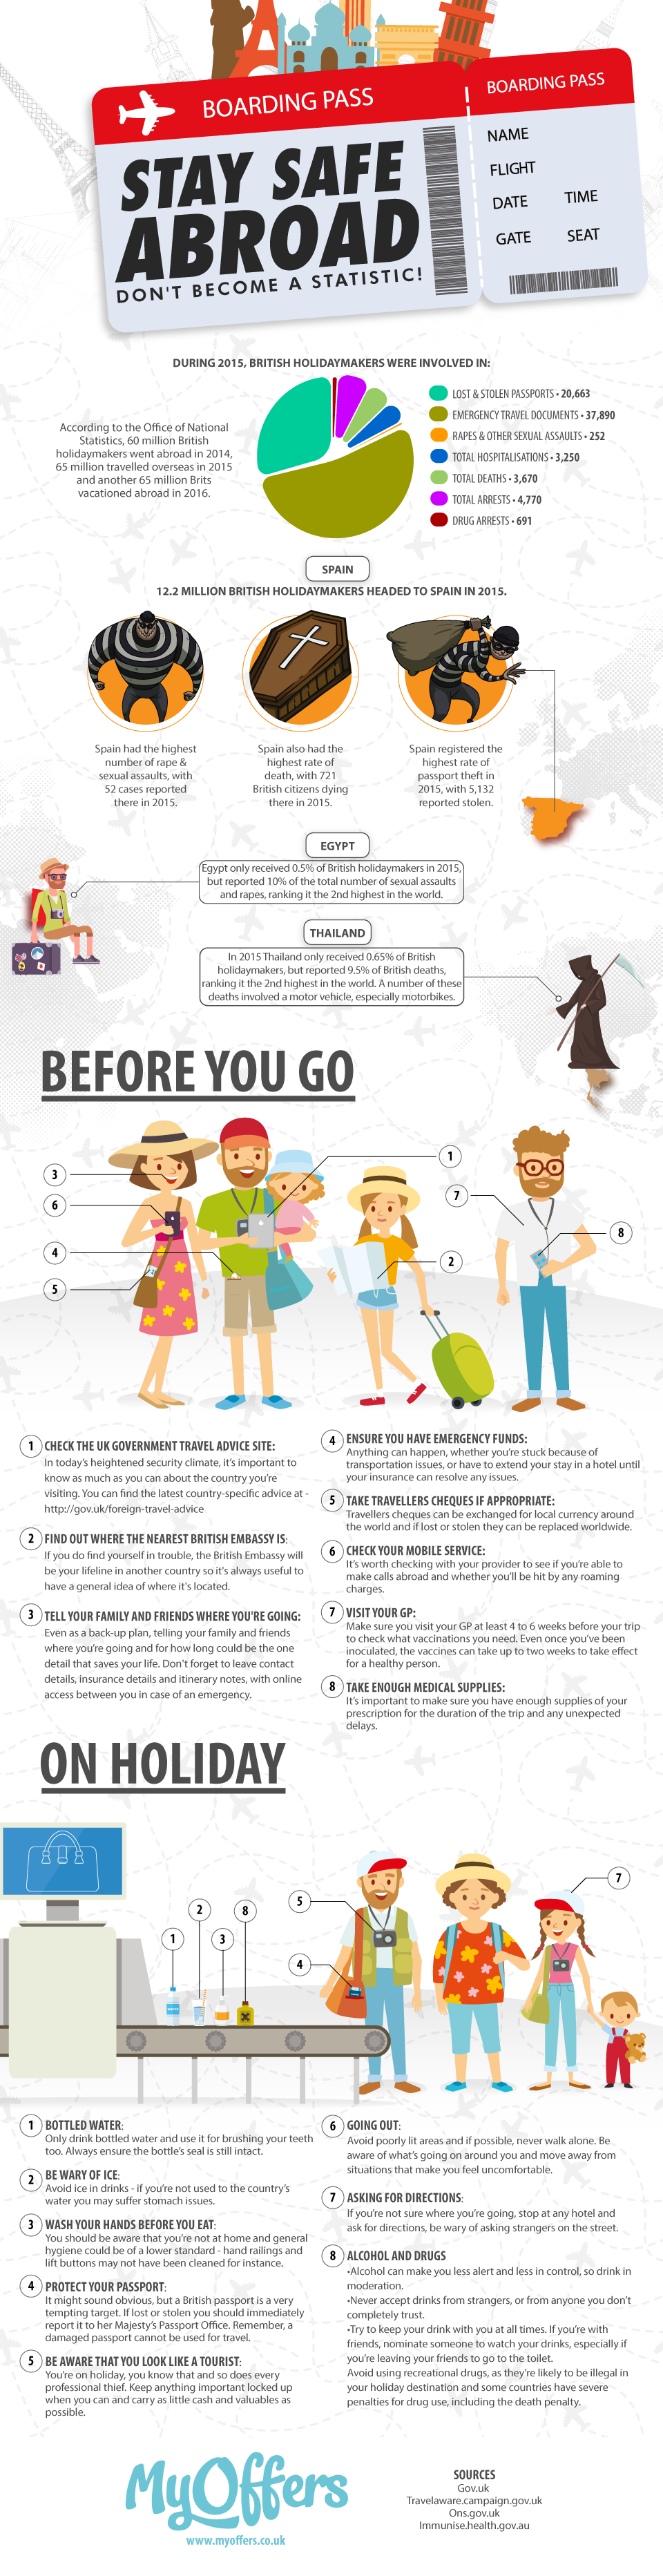 Staying Safe Abroad - Don't Become a Statistic